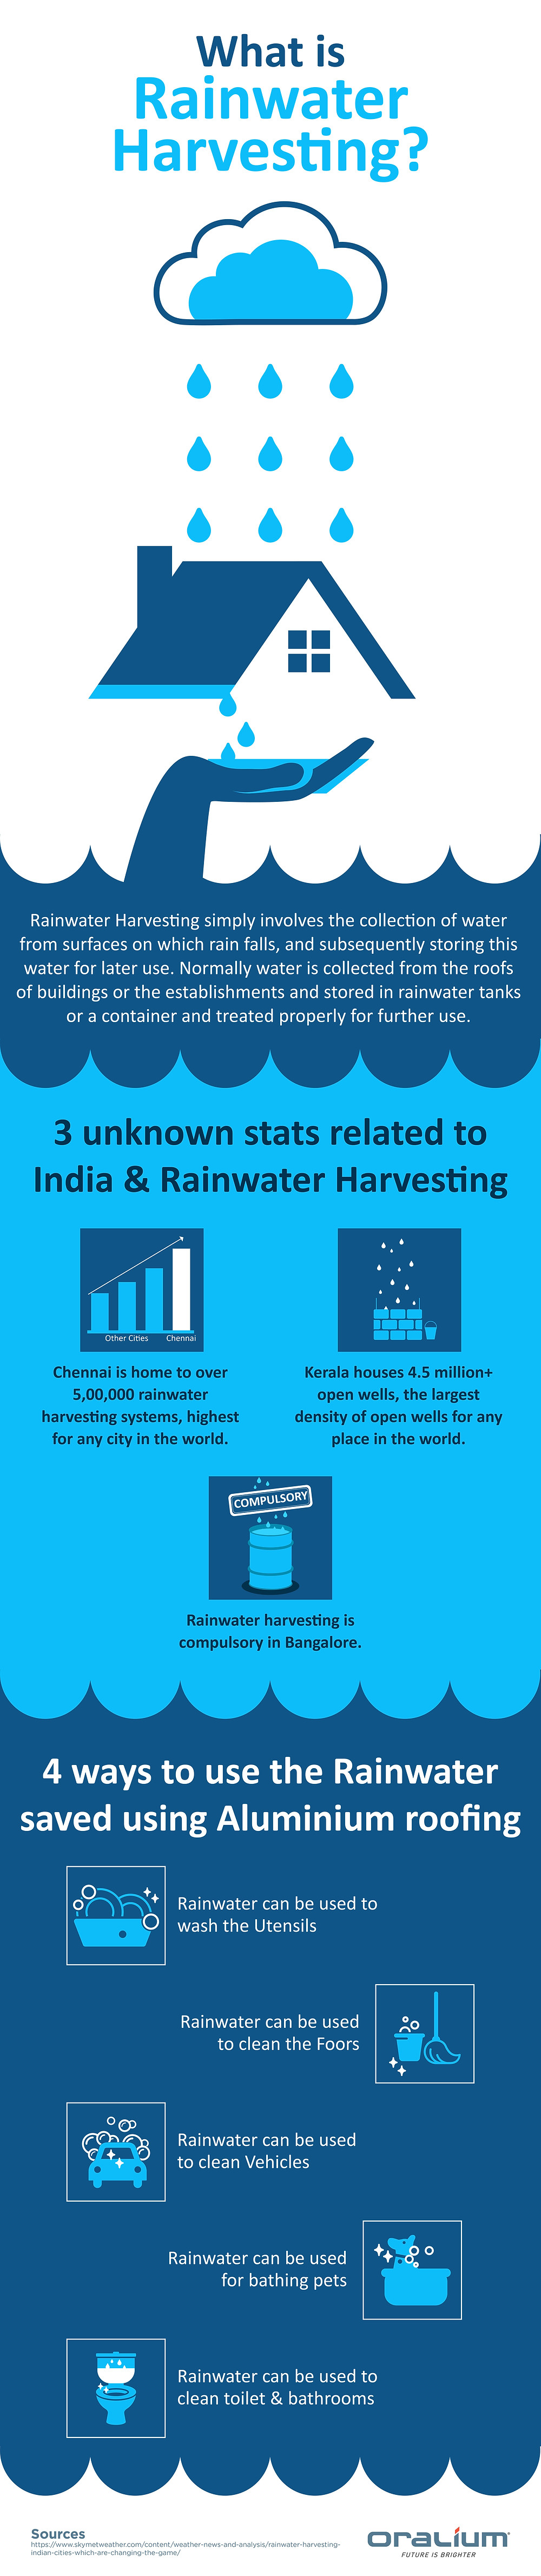 What is Rainwater Harvesting? - Oralium